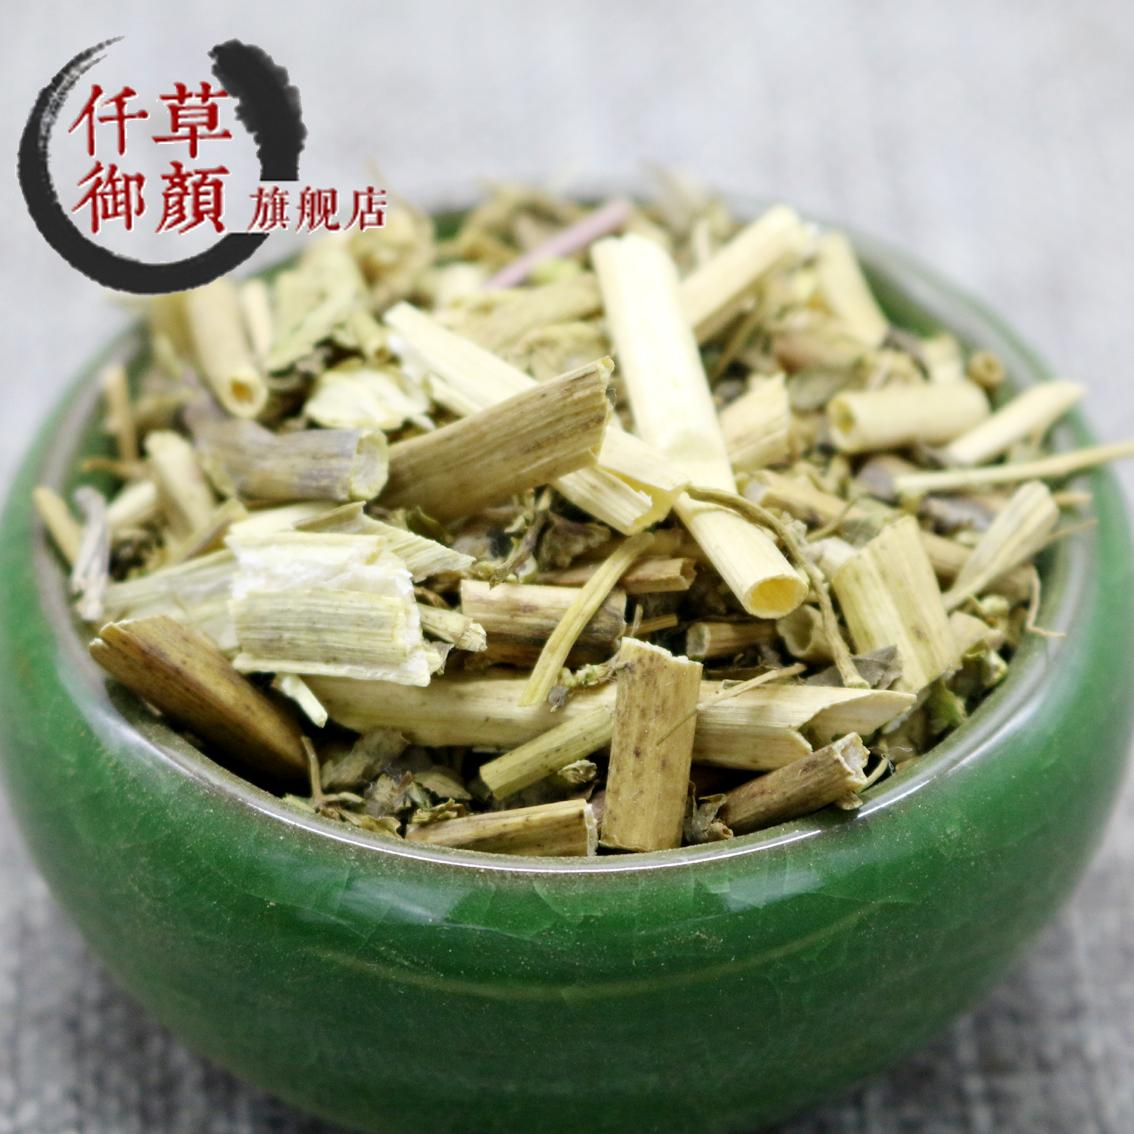 Audience full of 39 yuan shipping qian yu yan grass cat grass cat grass egeria rotten scar eye 500g